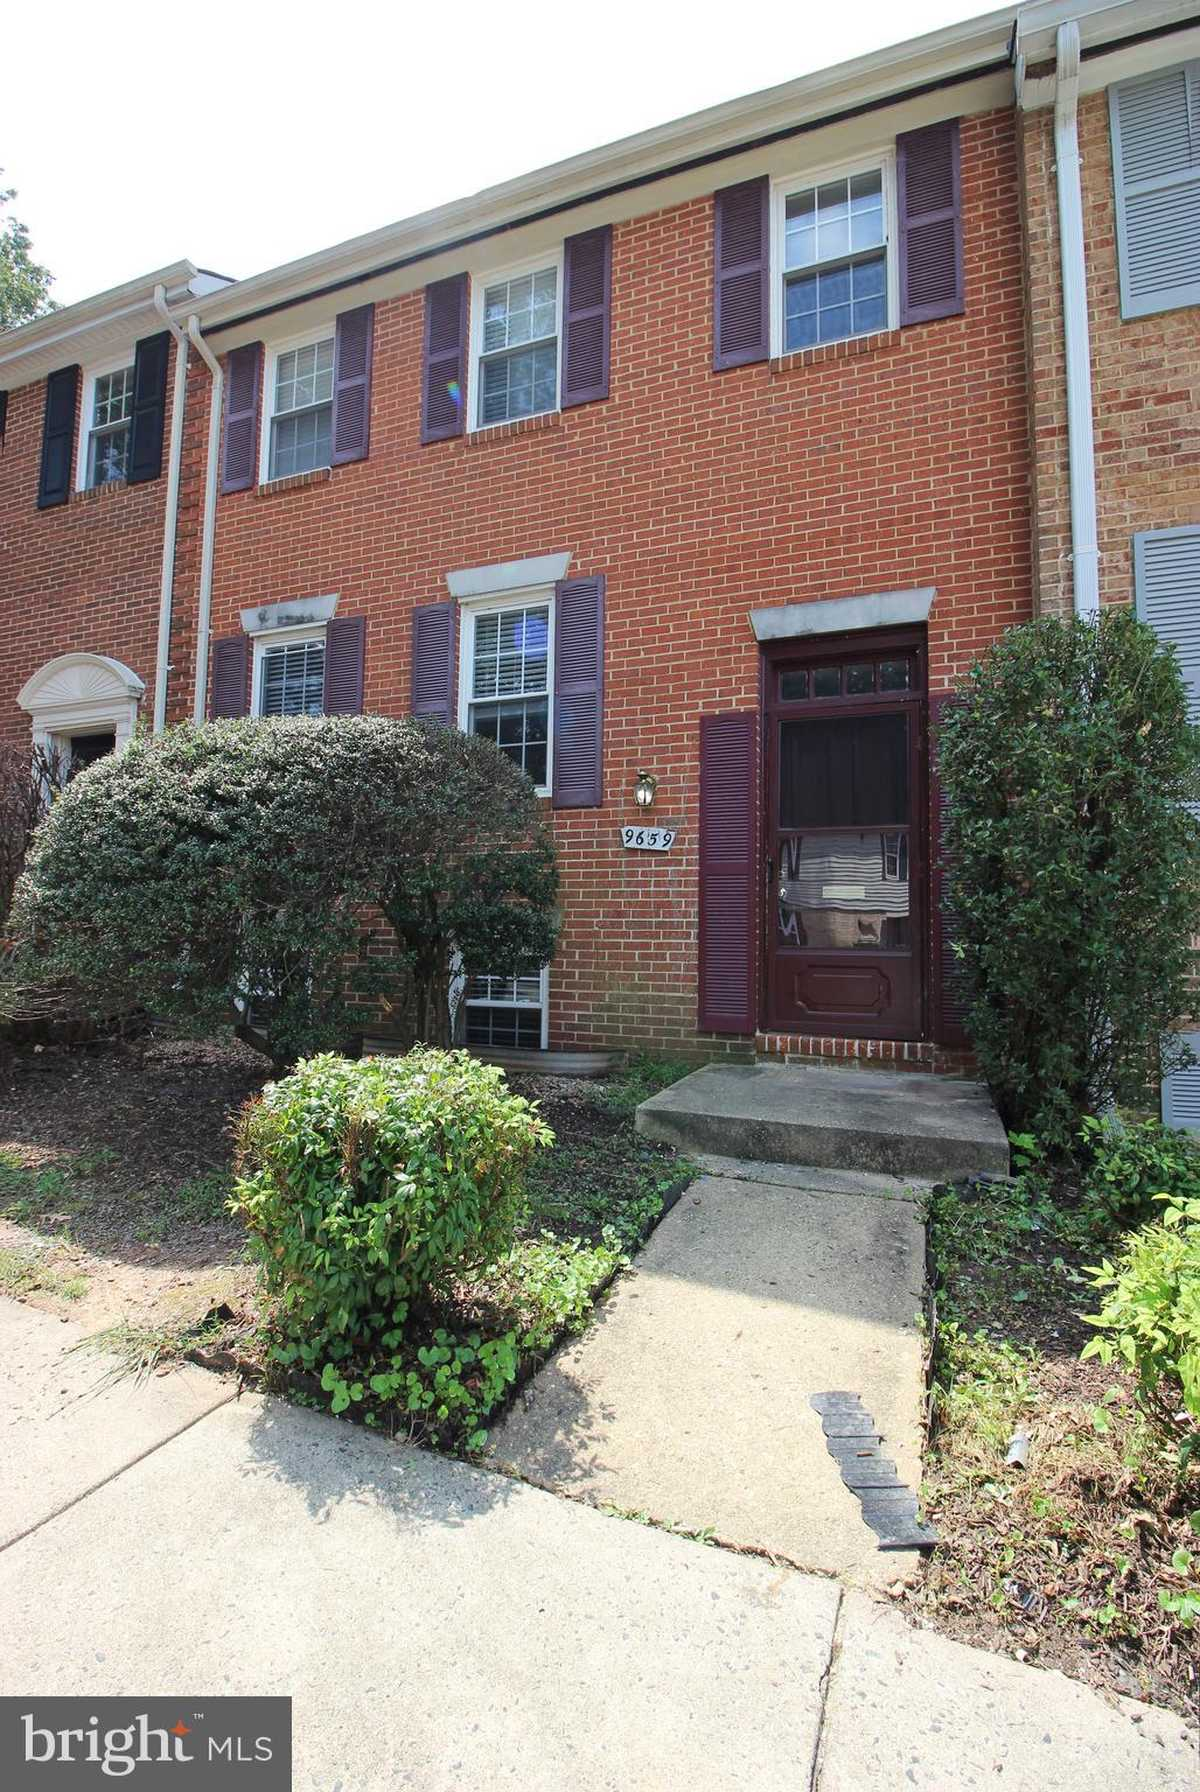 $2,250 - 3Br/4Ba -  for Sale in Linden Square, Fairfax